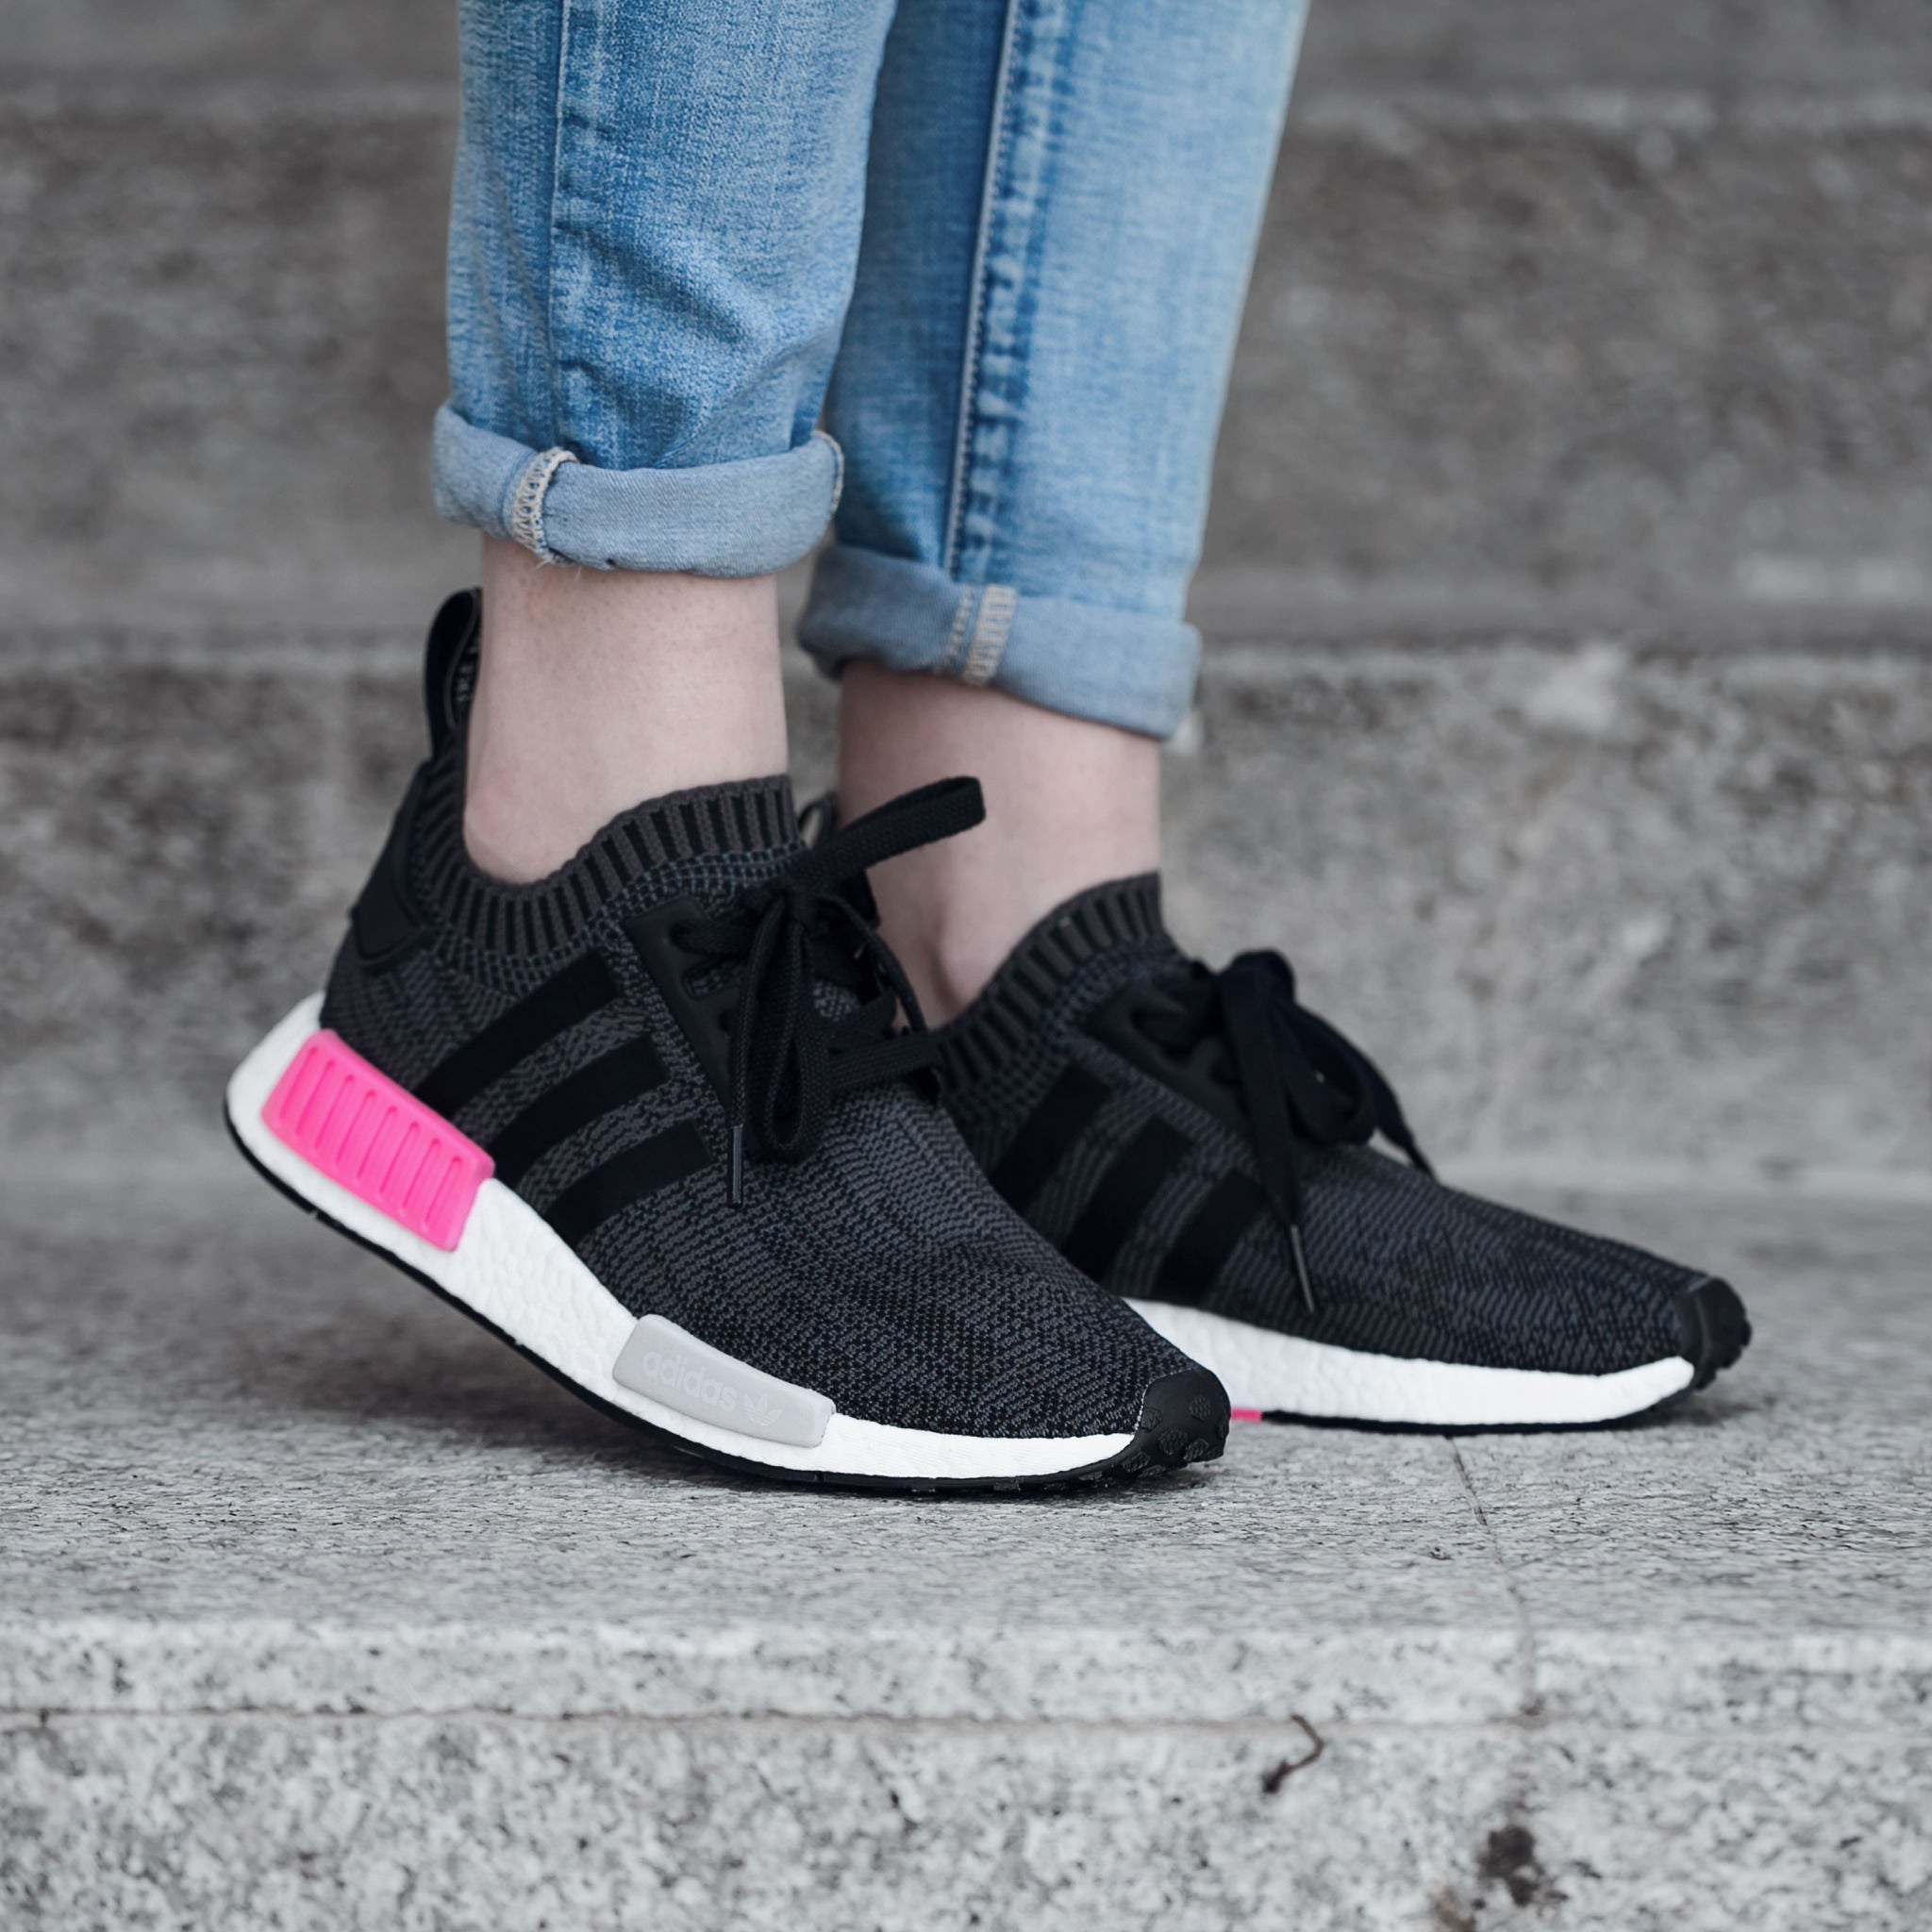 The adidas NMD R1 Primeknit Japan Triple Black Drops Later This